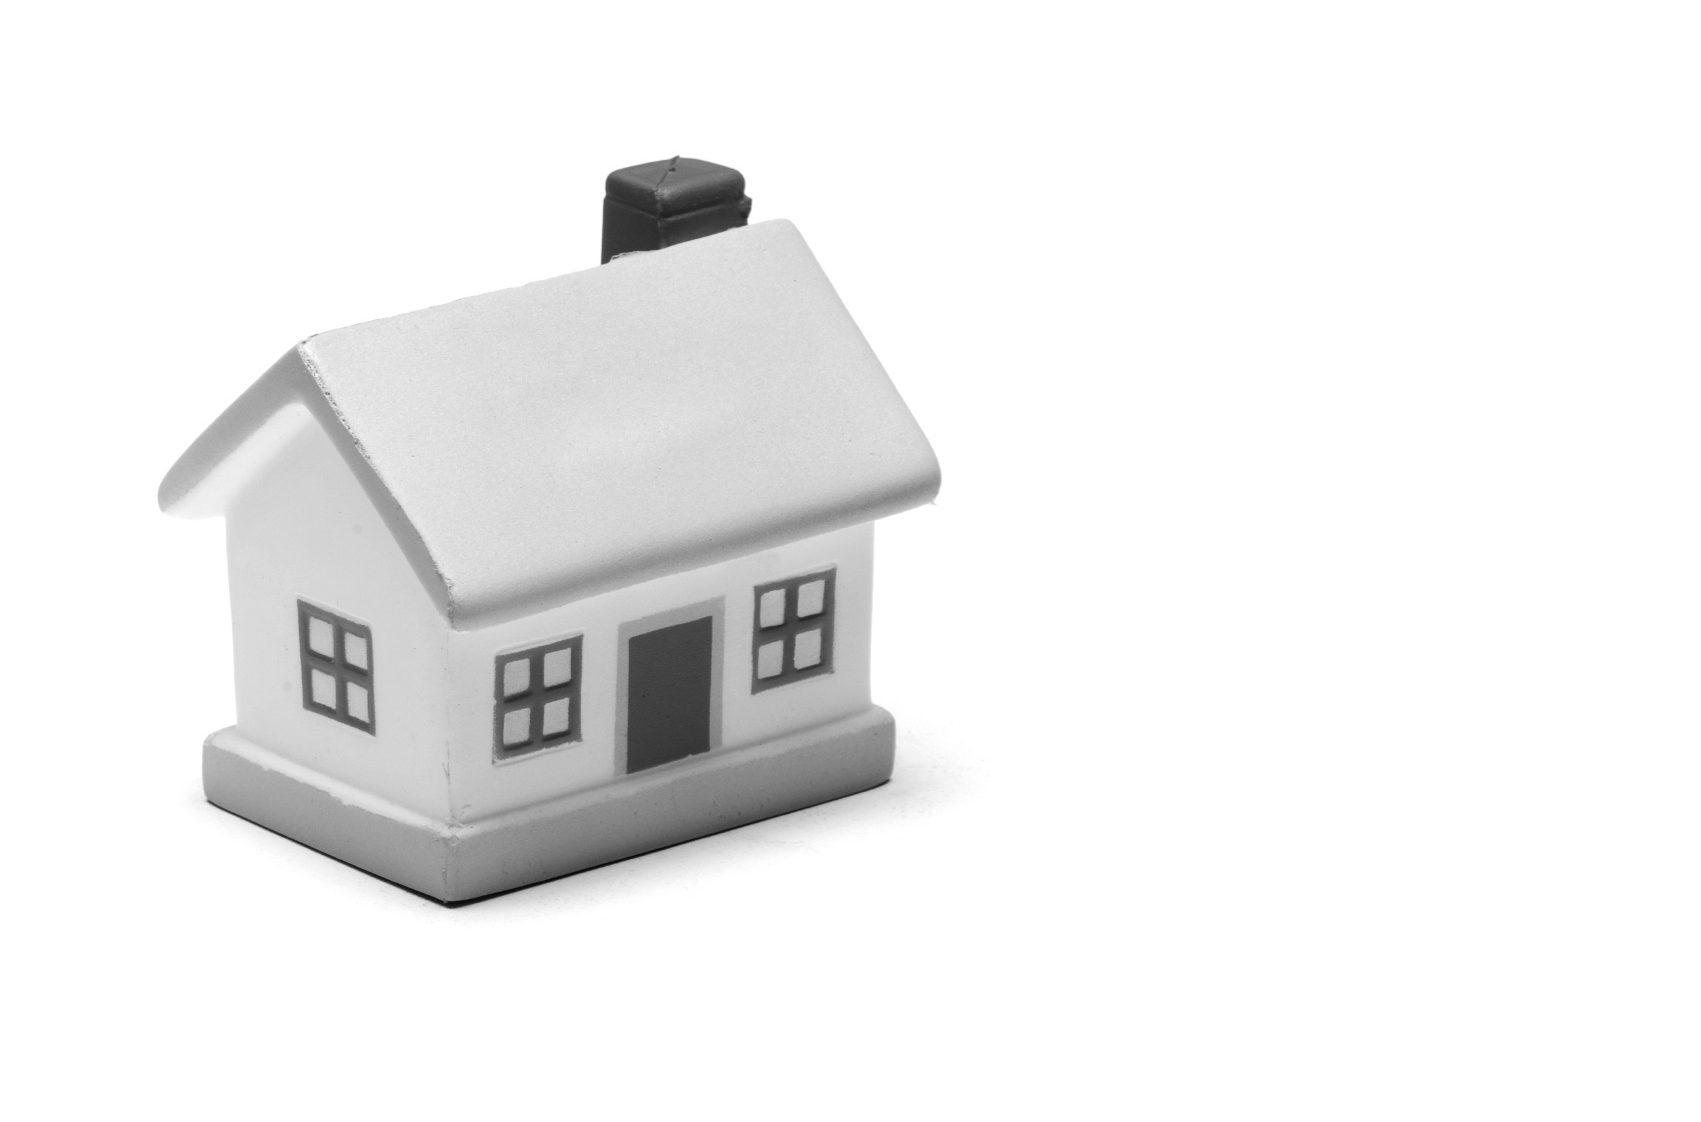 Miniature toy house on plain white background